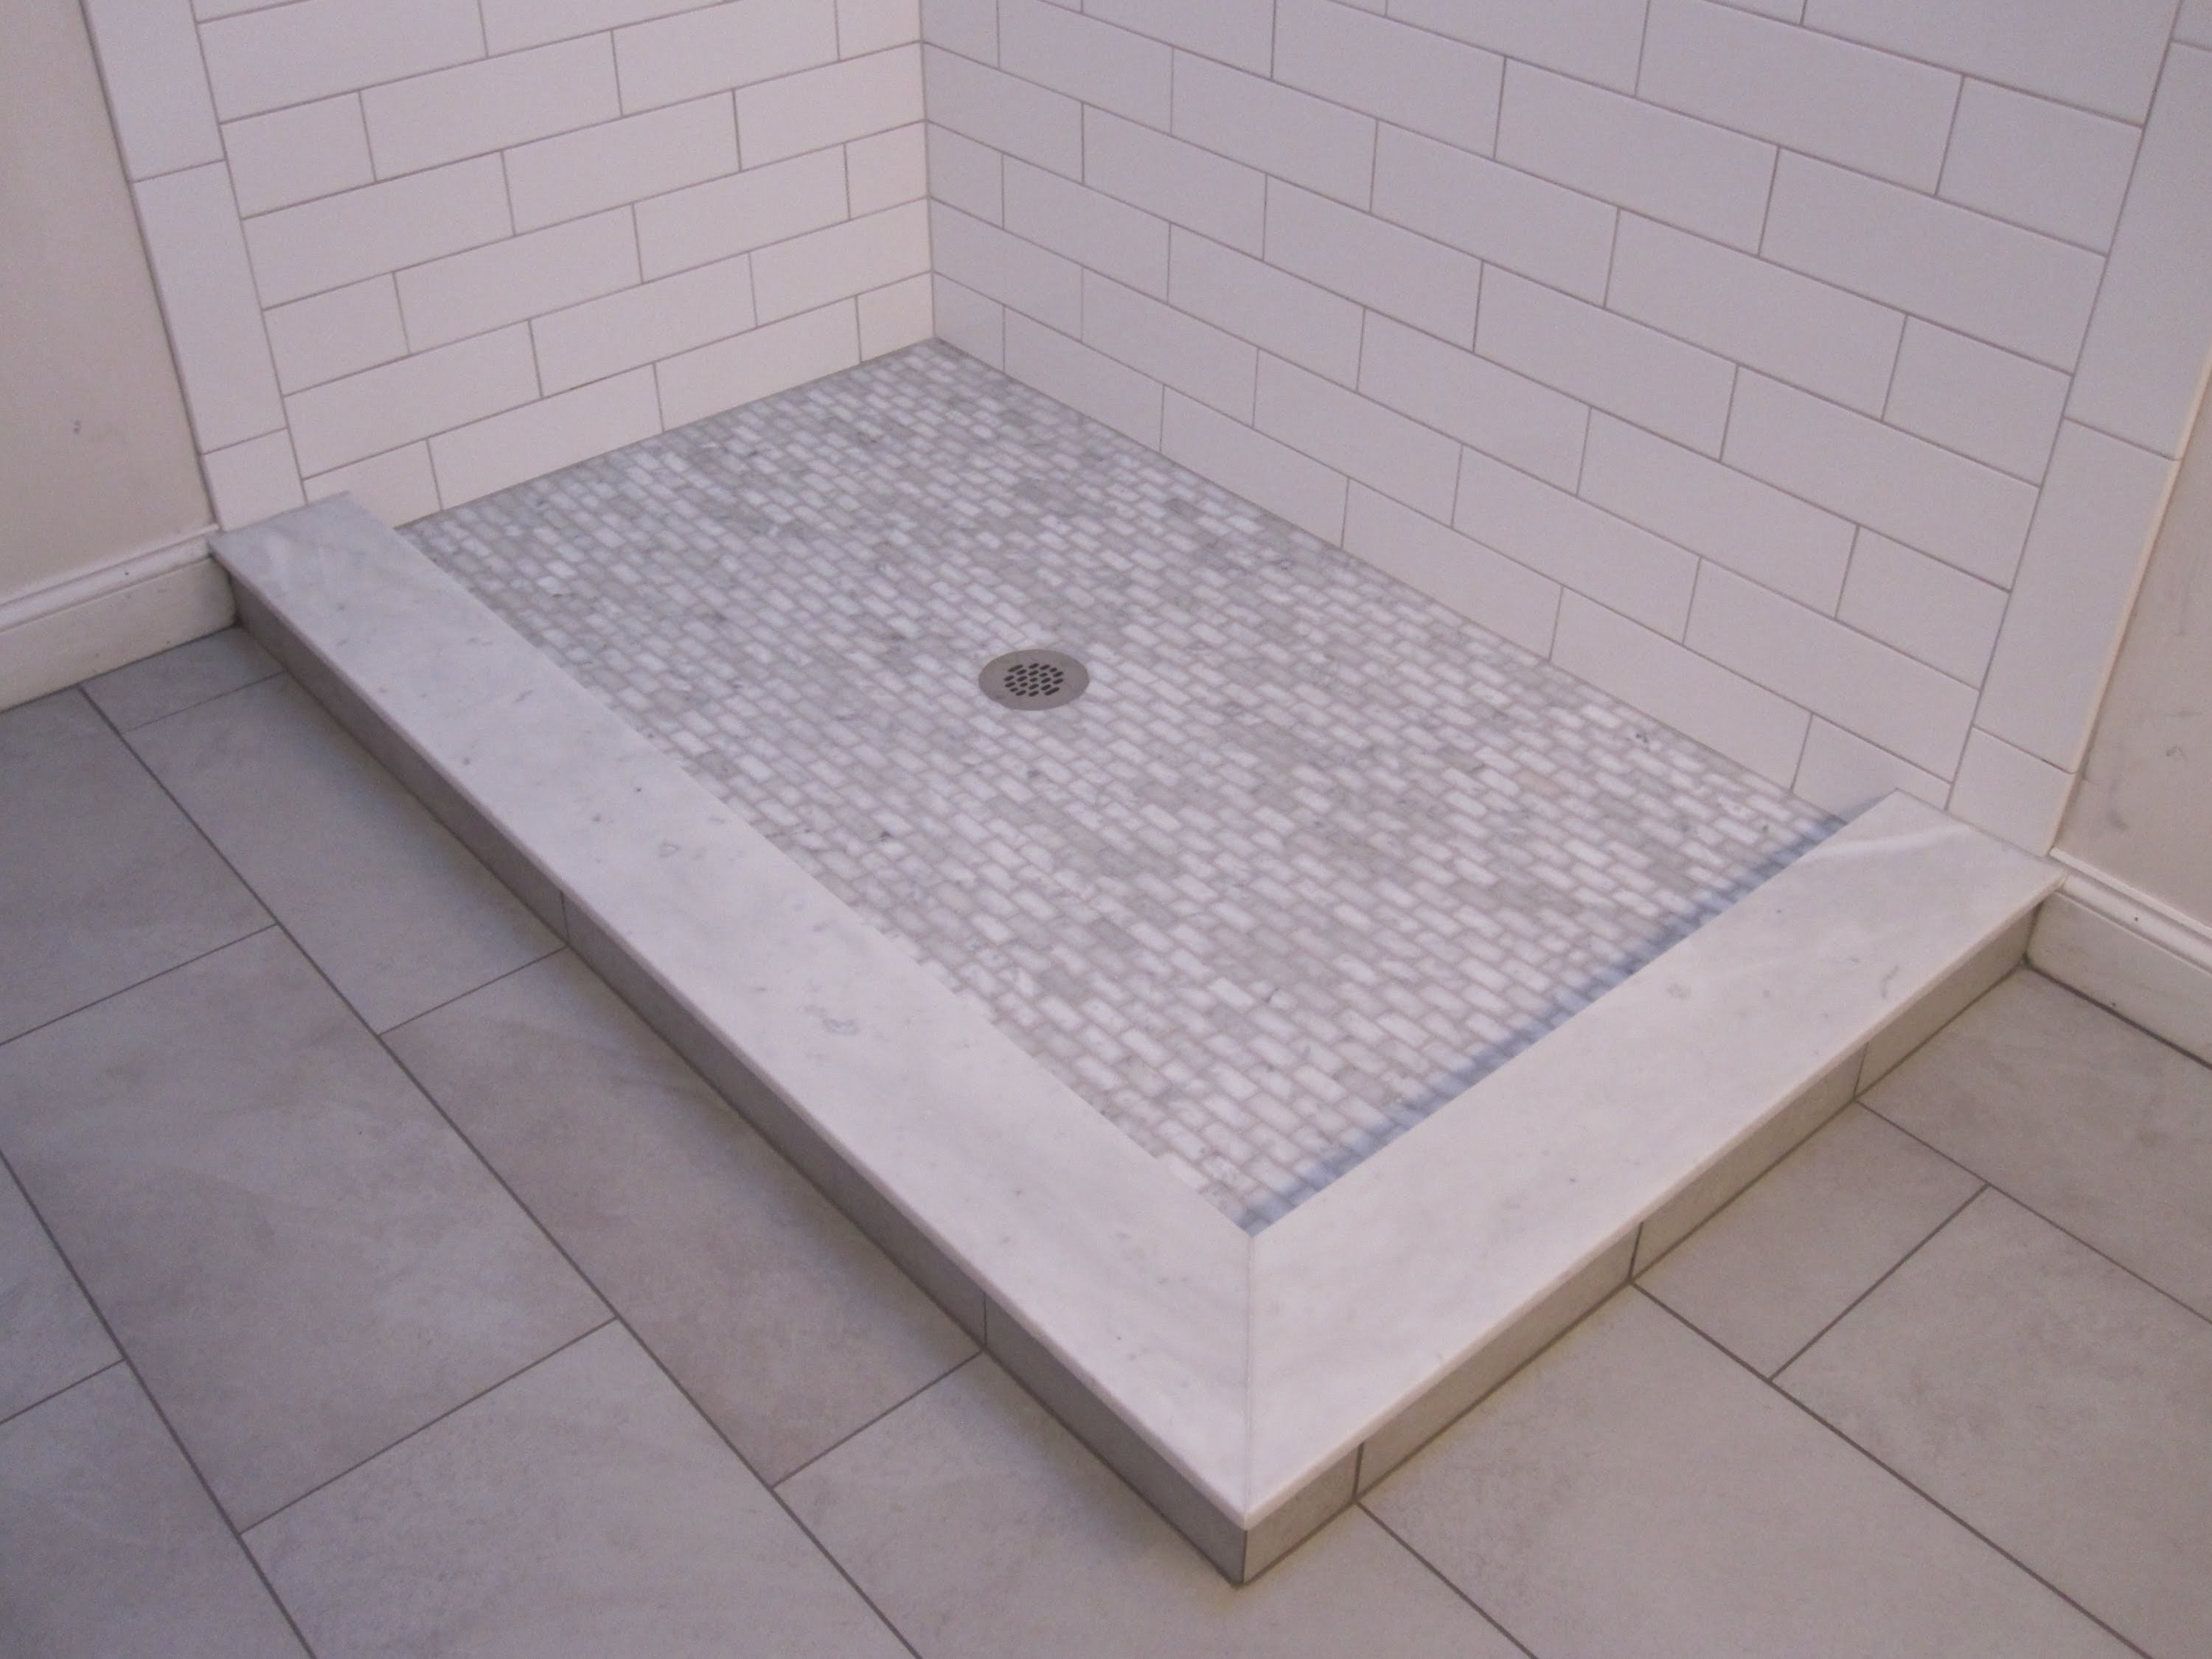 Decorating inspiring edging and trim using schluter strip ideas chic showes stall with tile flooring and schluter strip on tile edgeing matched with white tile doublecrazyfo Choice Image